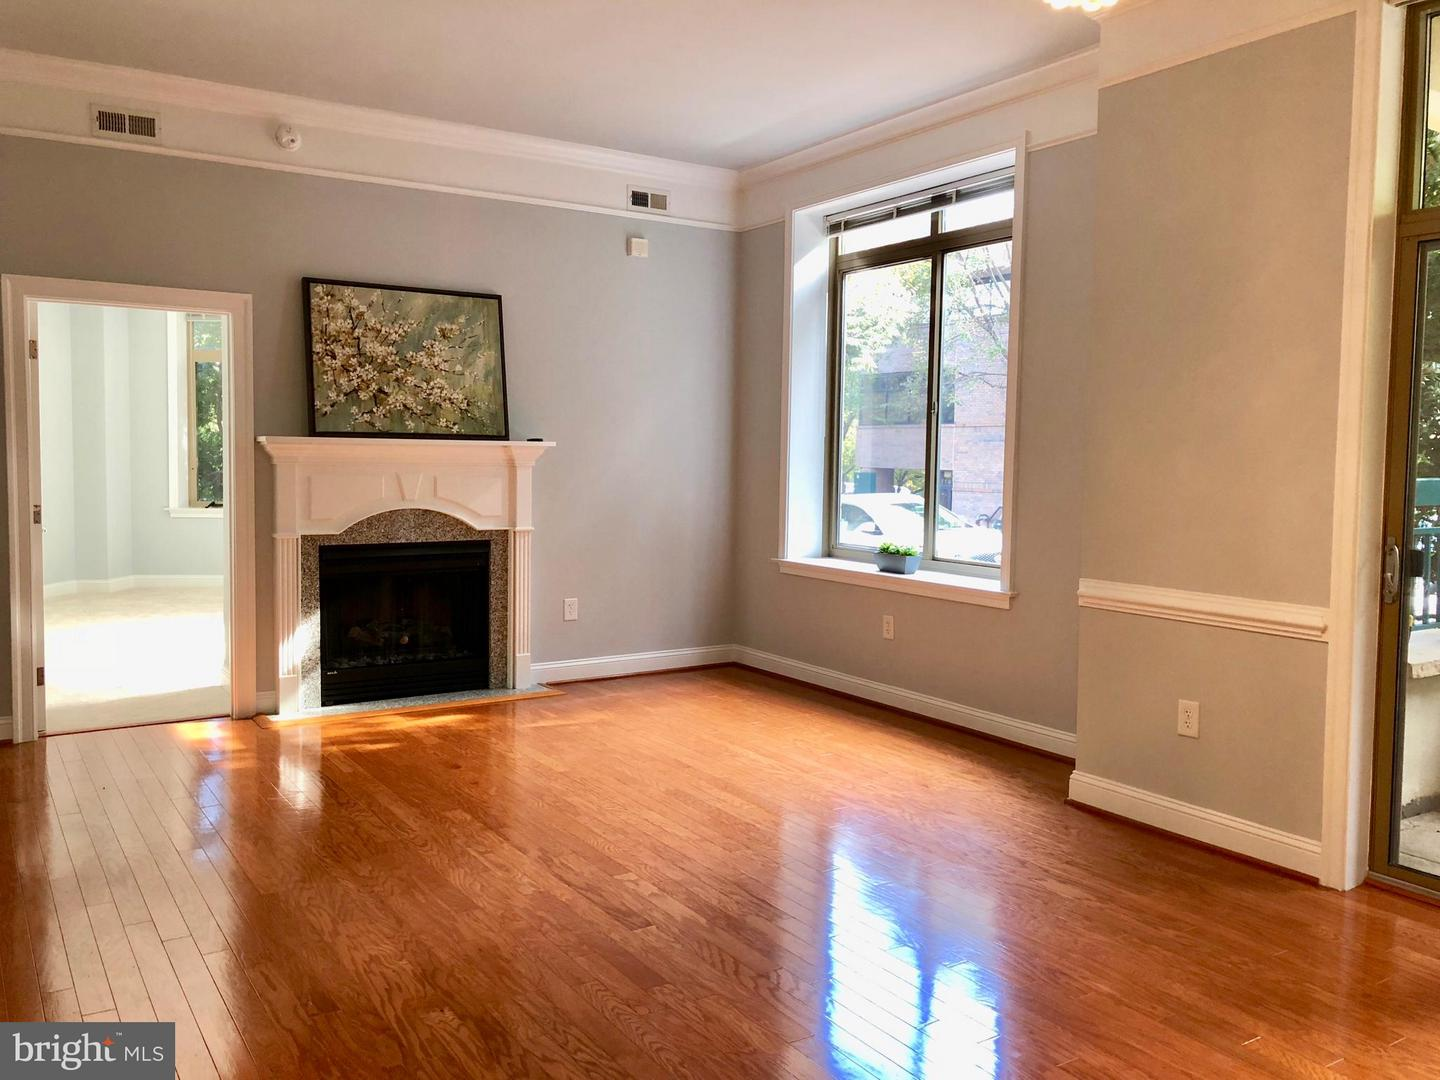 Single Family for Sale at 1450 Emerson Ave #g03-3 McLean, Virginia 22101 United States